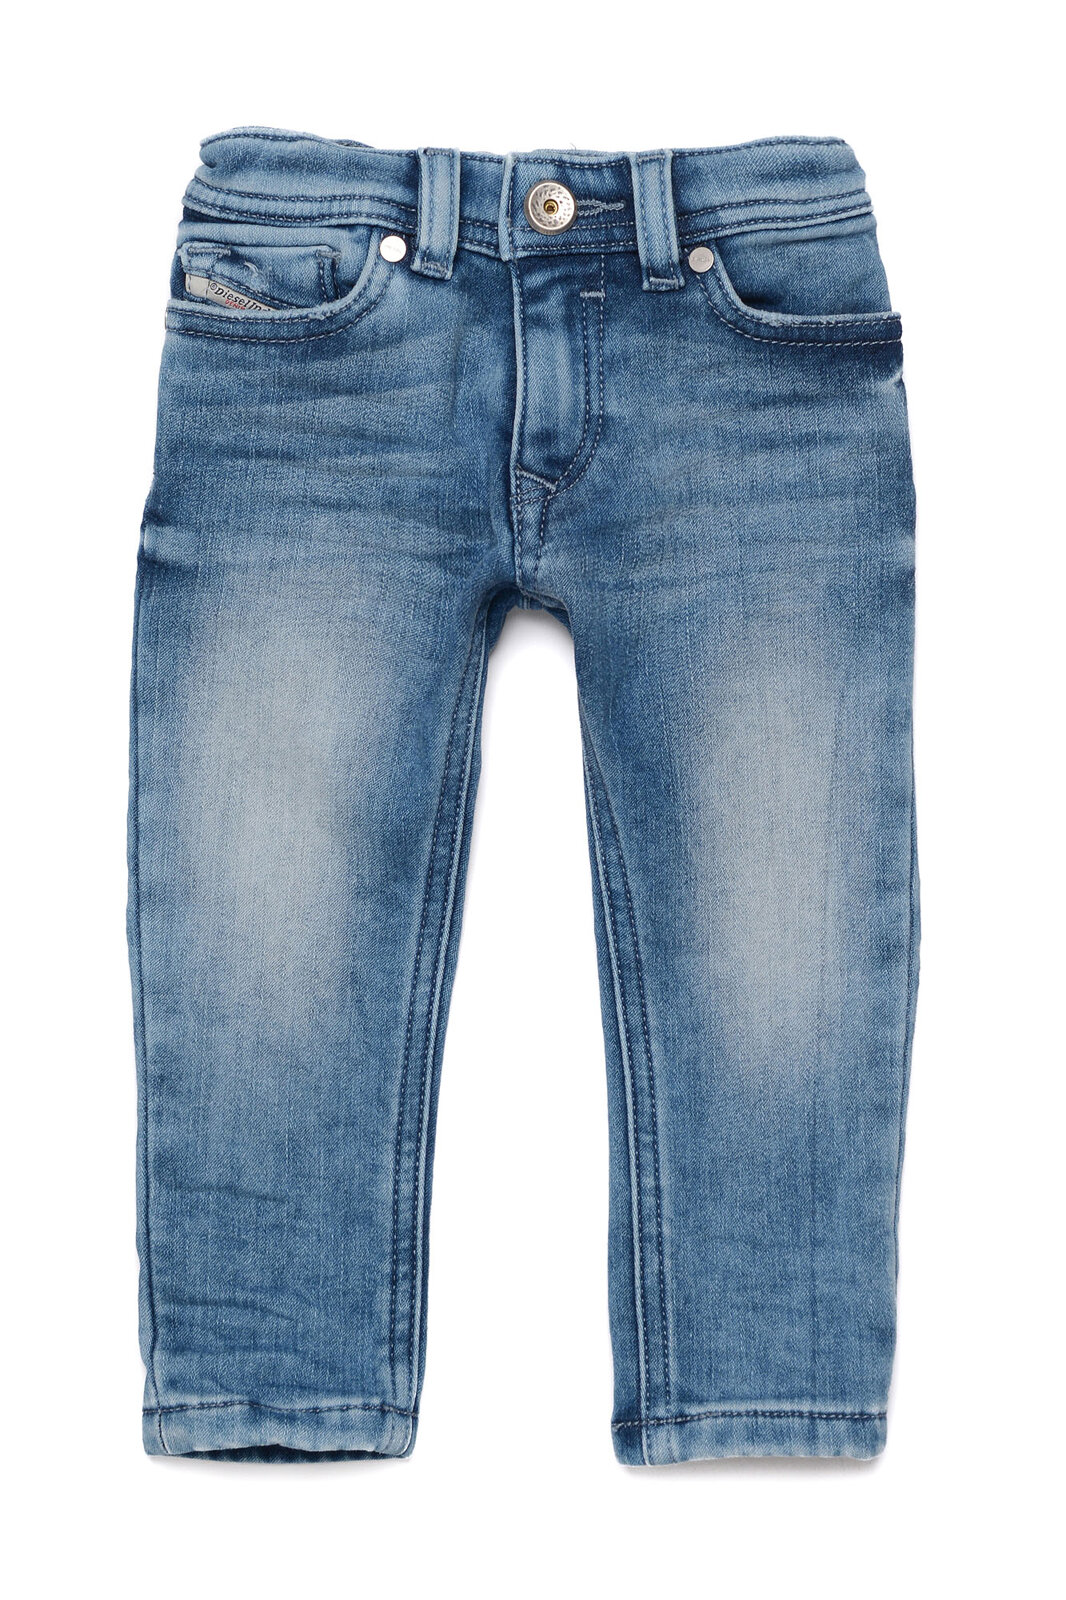 Sleenker-B Jjj-N Pants - Diesel Kid